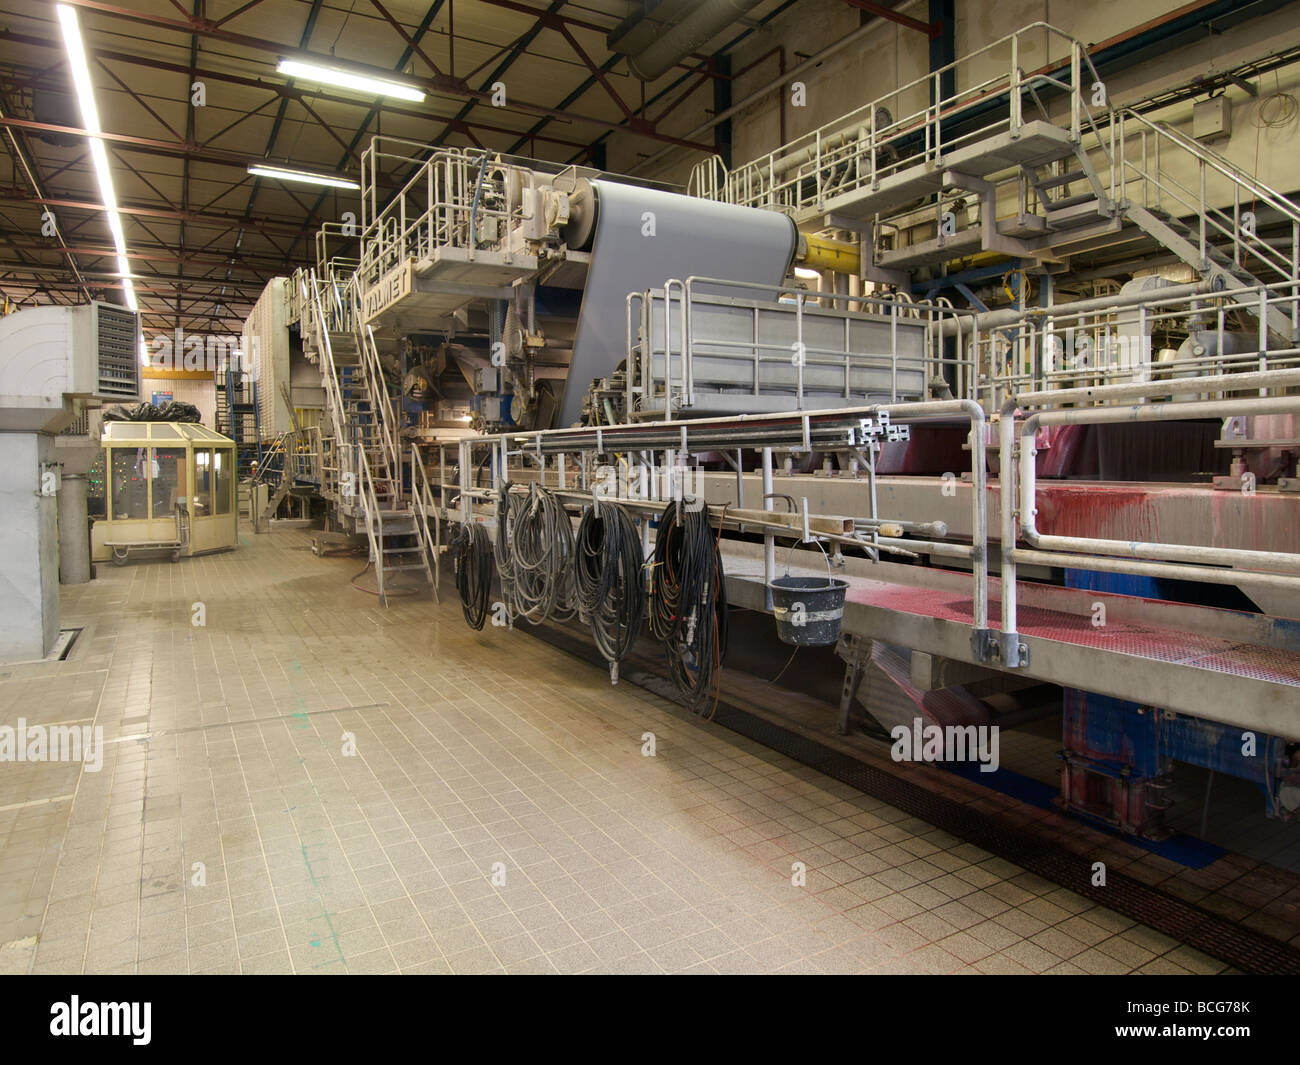 Large paper making machine made by Valmet - Stock Image